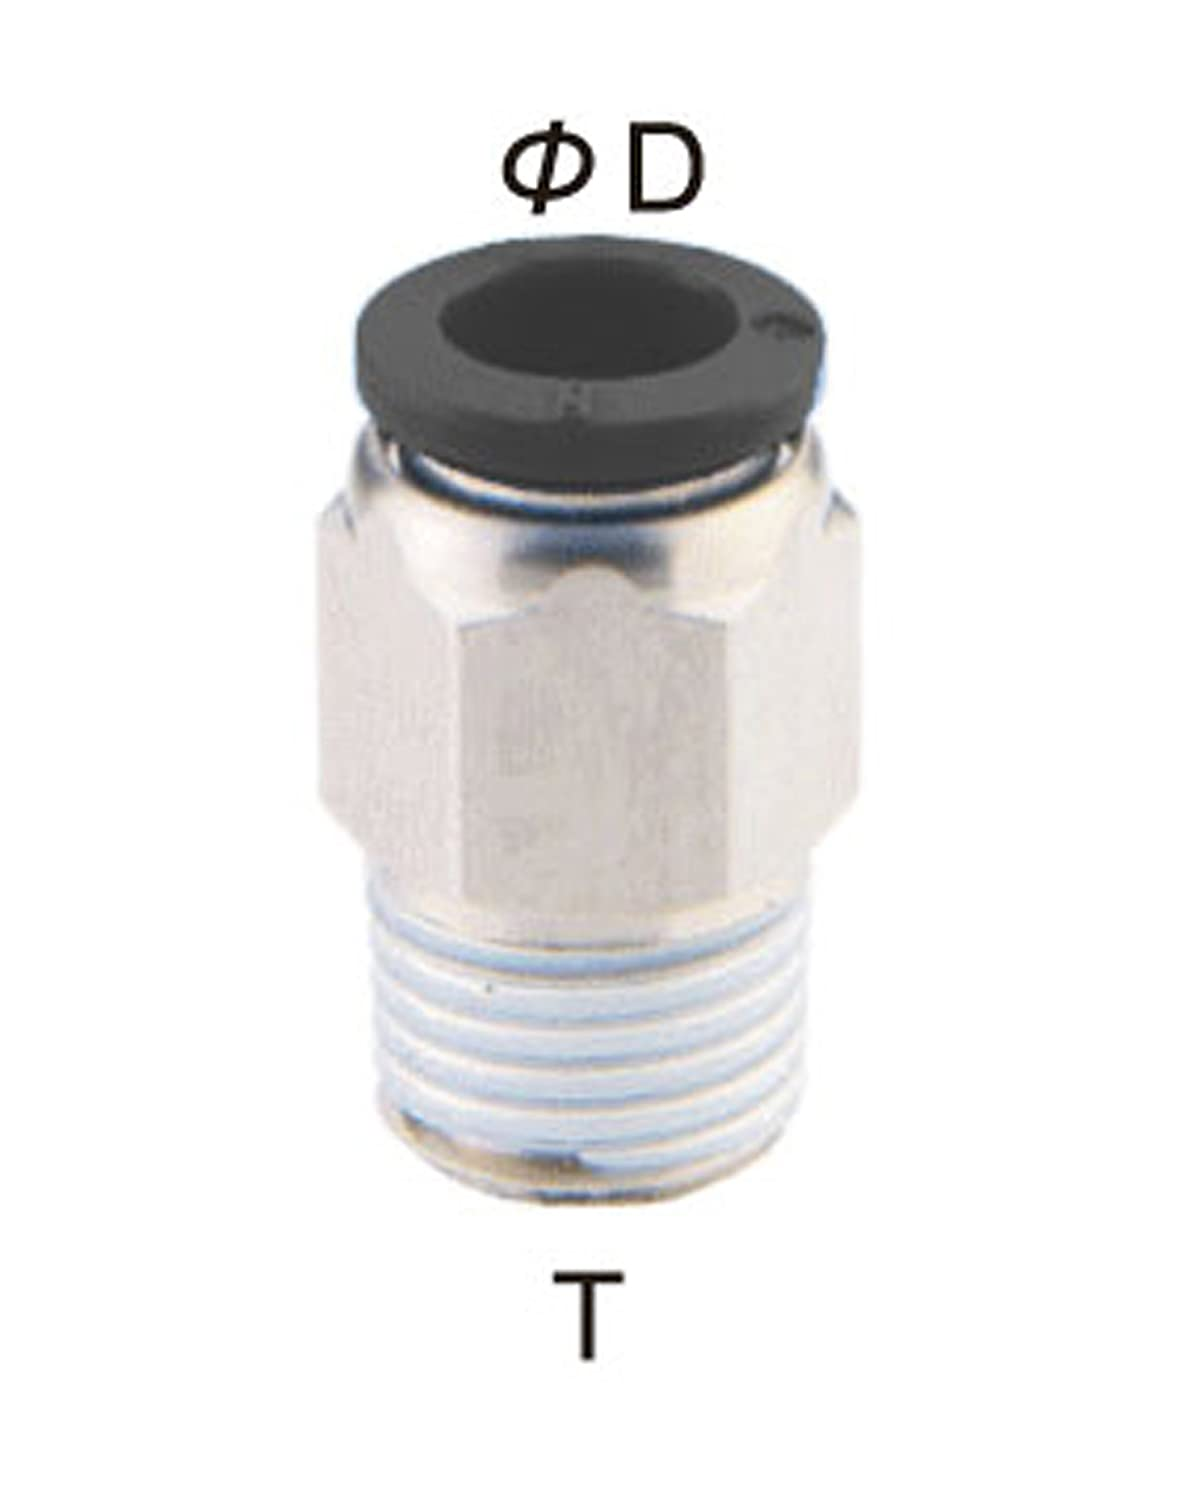 10 Pcs 1//4 Tube x 1//4 NPT push to connect fitting